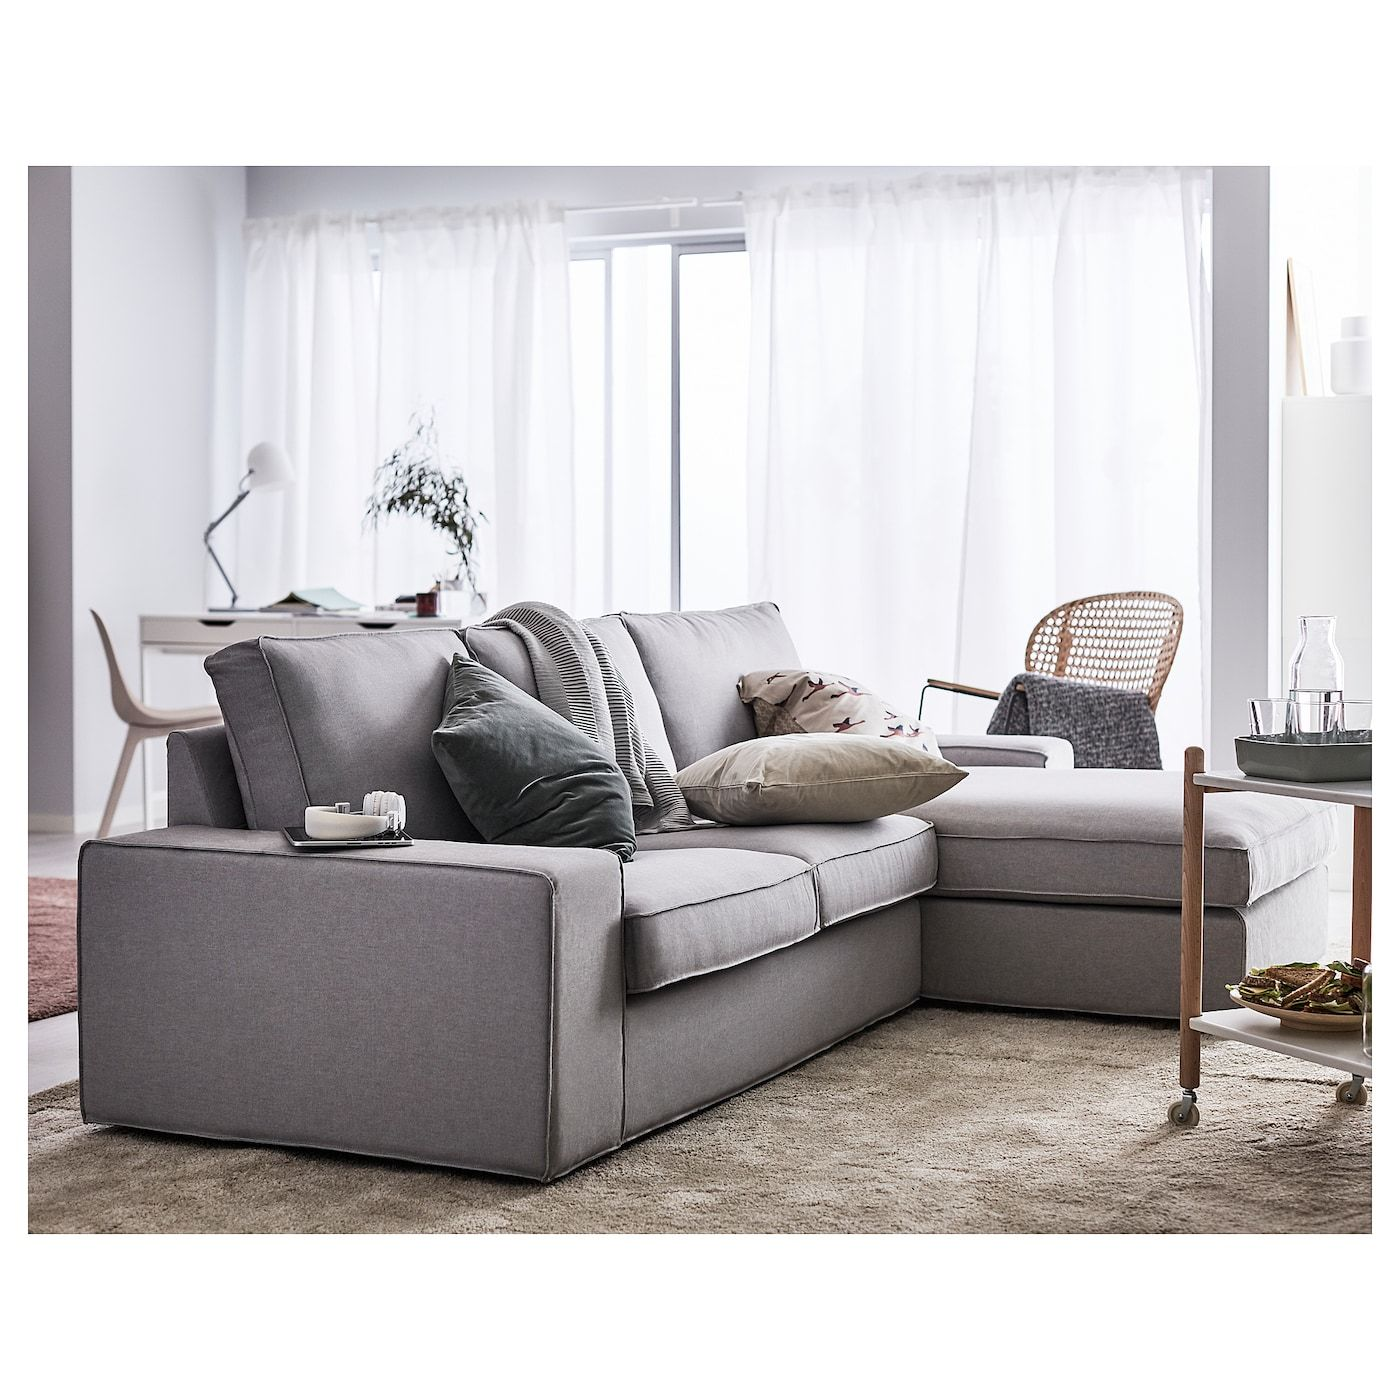 Kivik Sofa With Chaise Orrsta Light Gray Ikea In 2020 Kivik Sofa Ikea Sofa Couch With Chaise